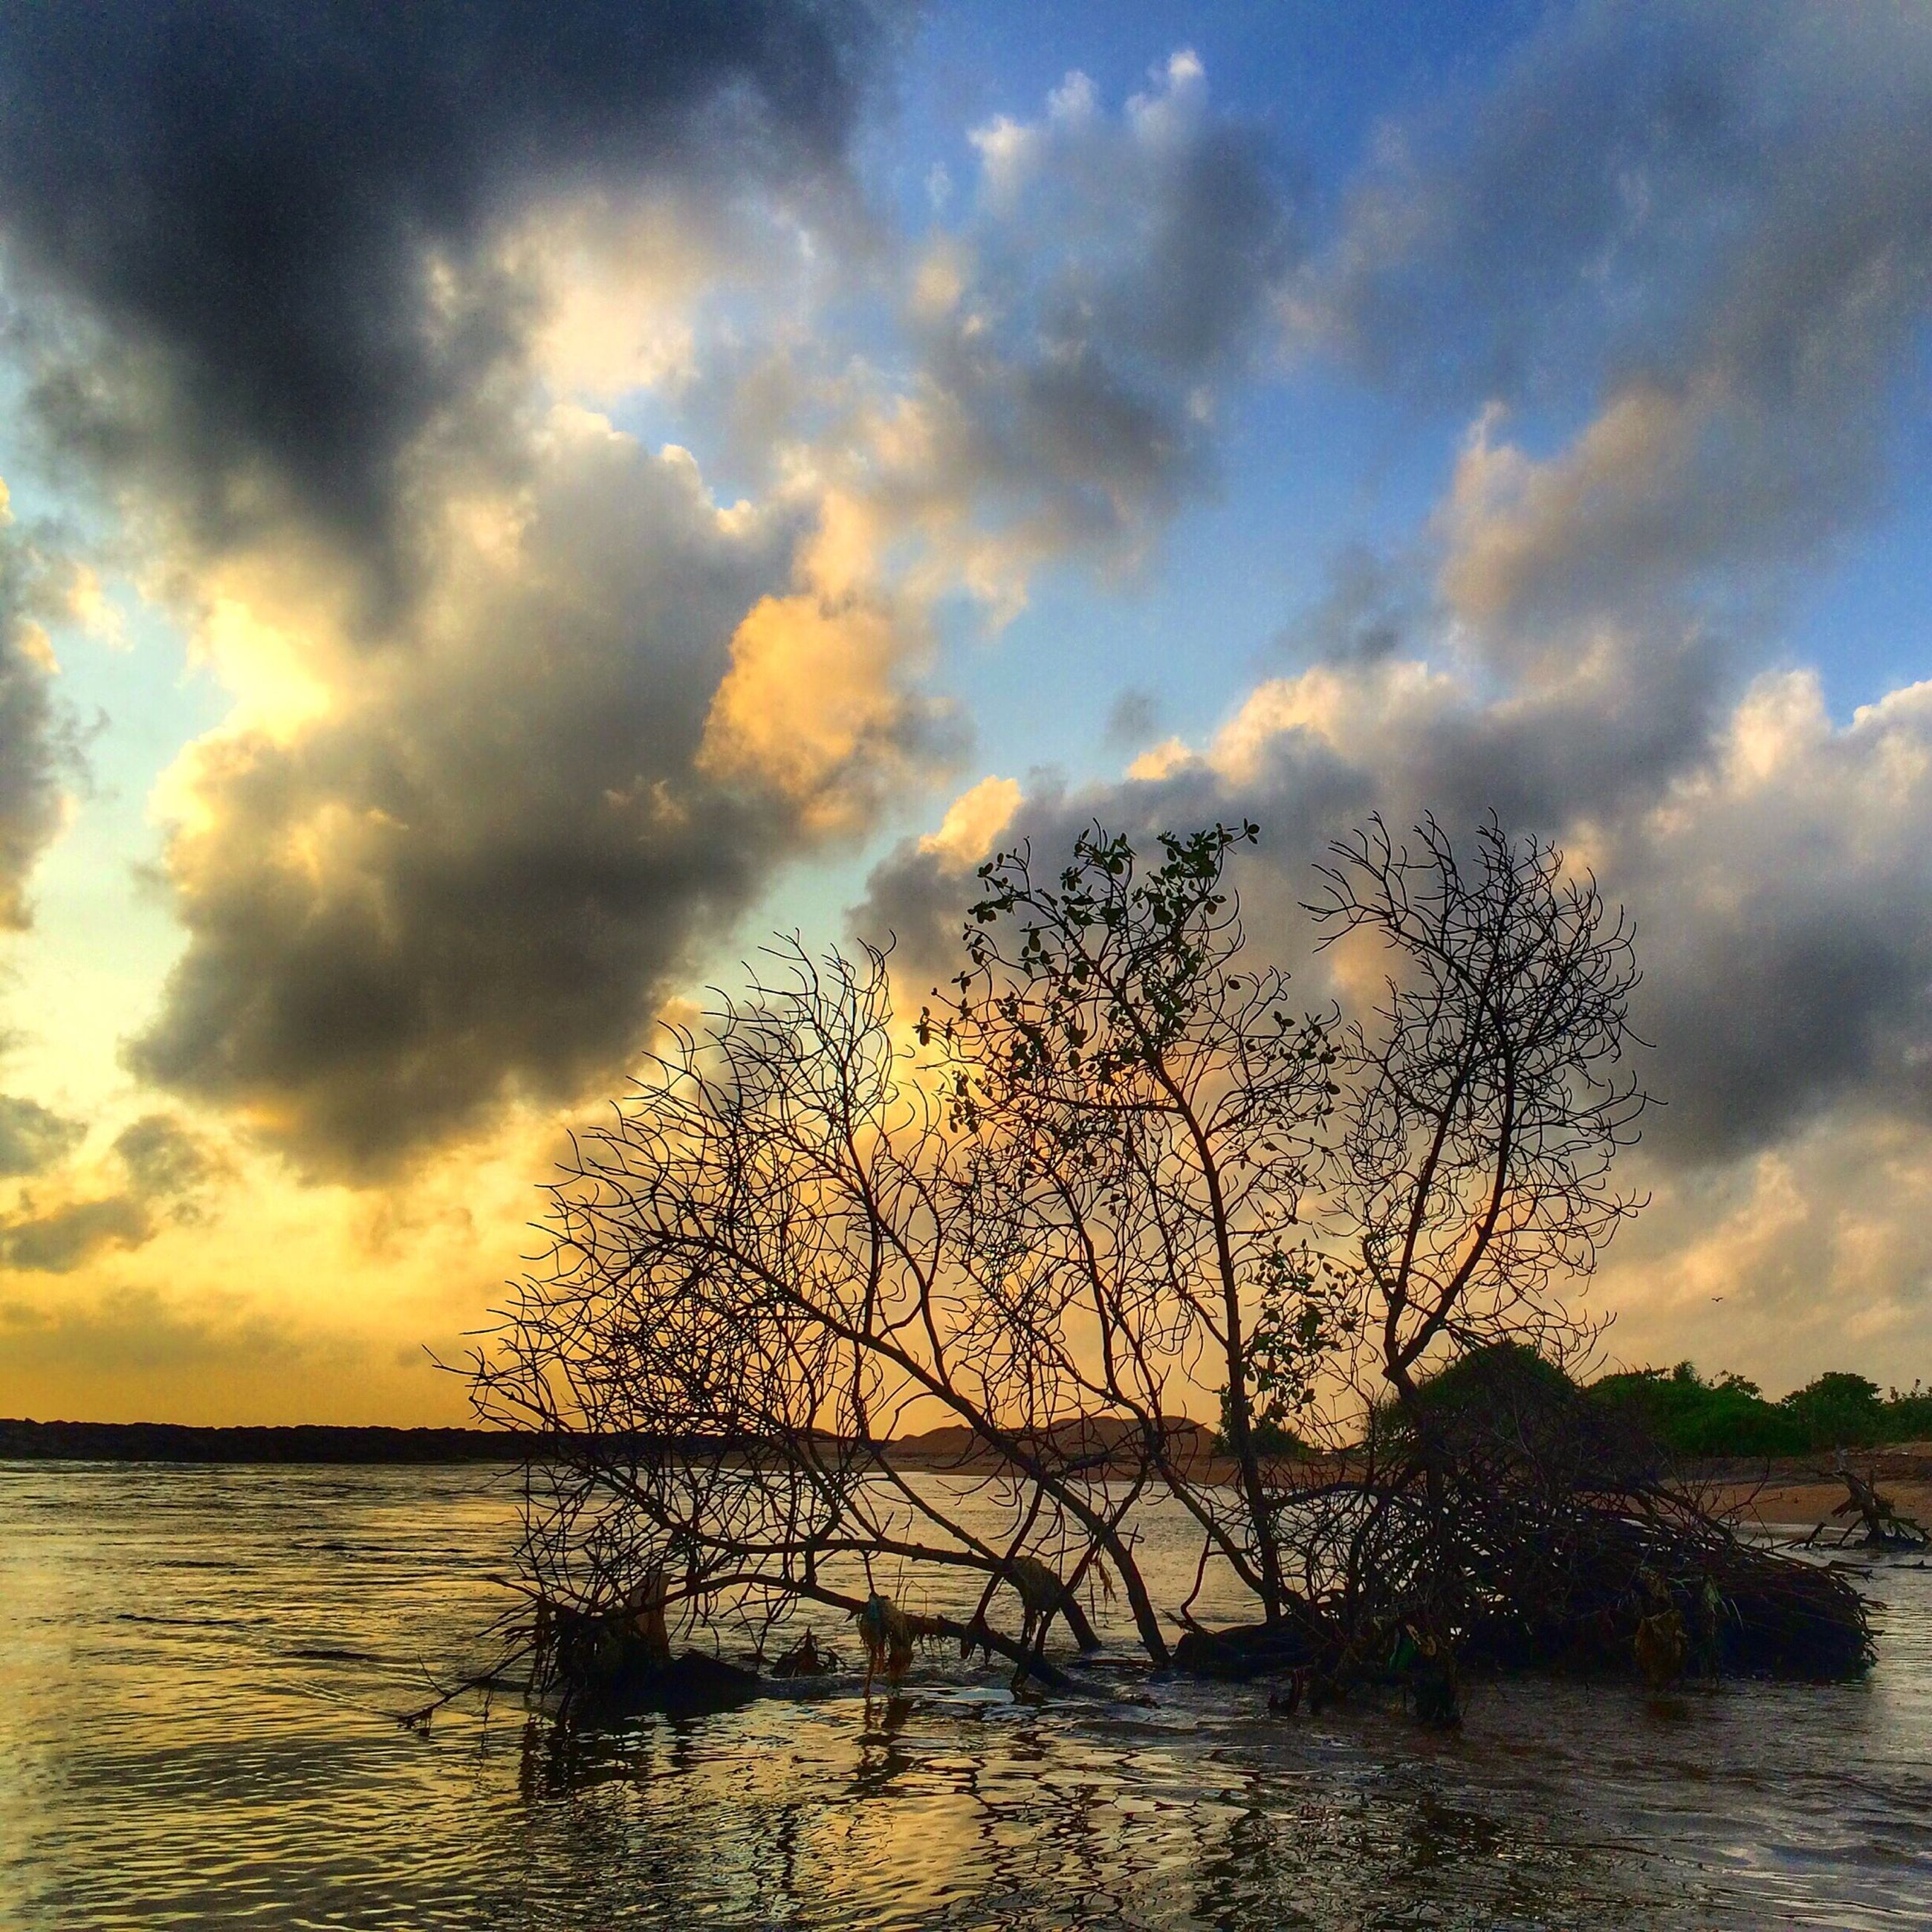 sky, sunset, water, tranquil scene, cloud - sky, sea, scenics, tranquility, beauty in nature, horizon over water, nature, cloudy, cloud, silhouette, tree, idyllic, growth, branch, no people, outdoors